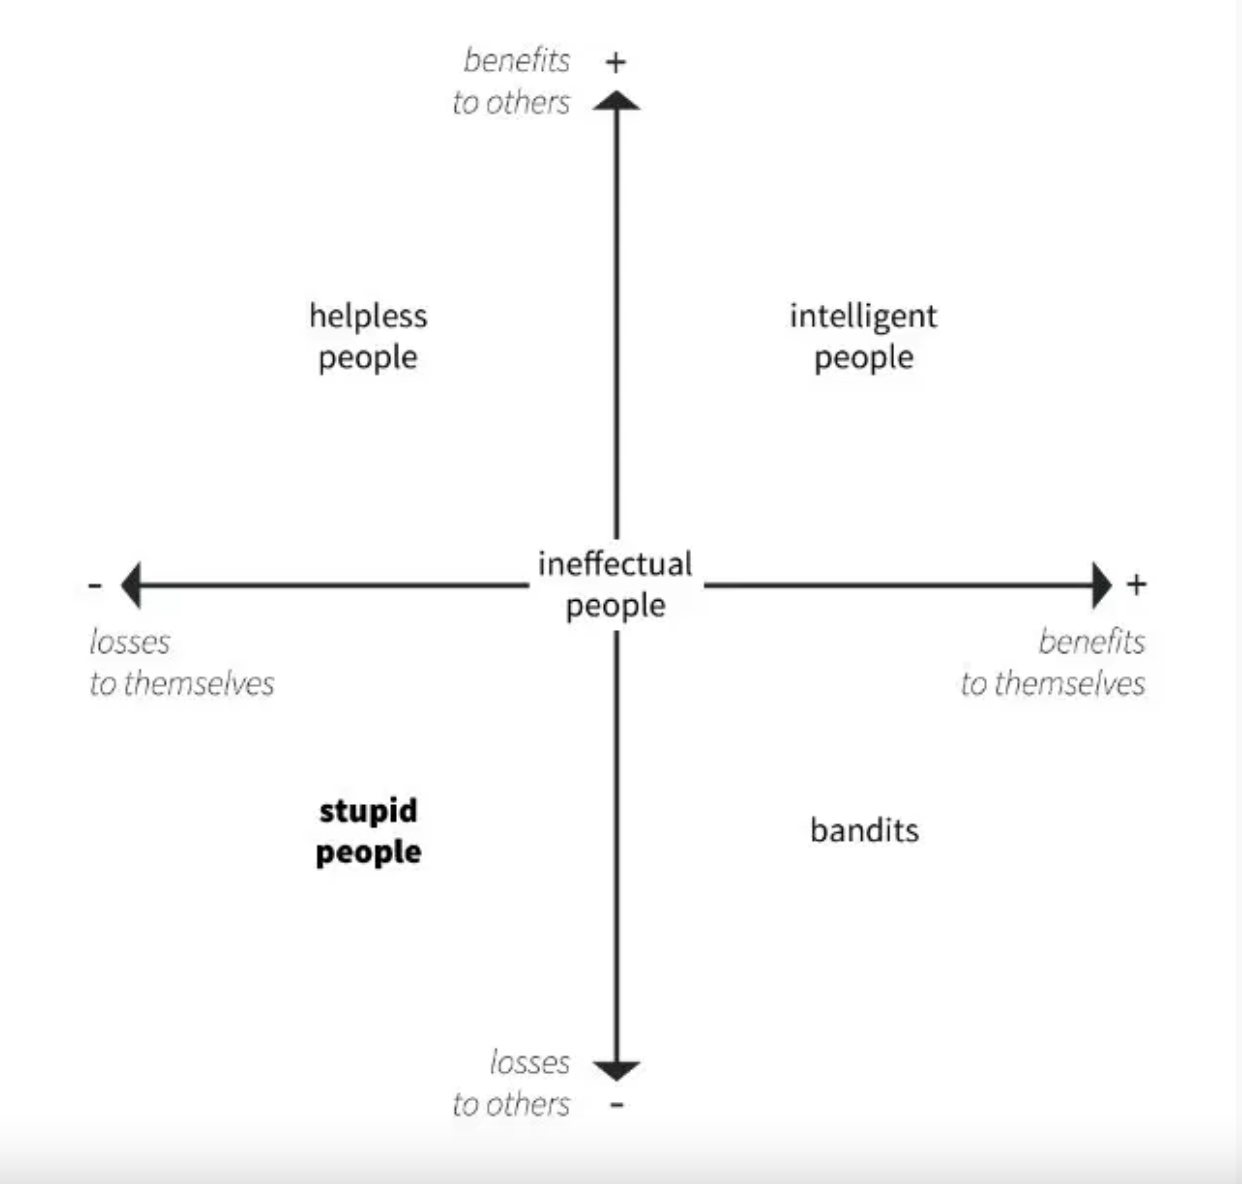 a chart of ineffectual people from helpless people to bandits